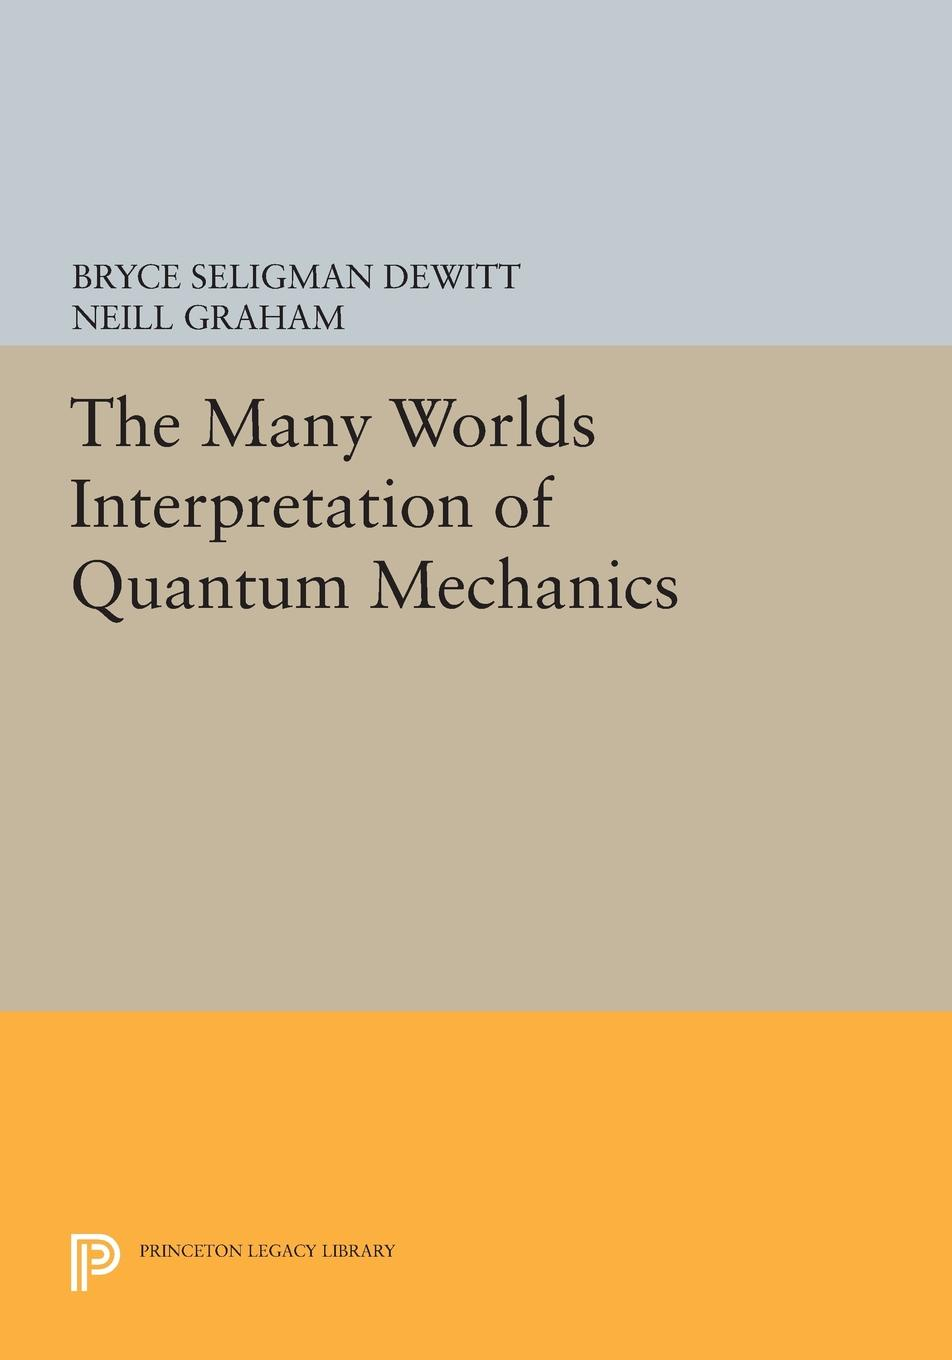 The Many Worlds Interpretation of Quantum Mechanics martin bojowald the universe a view from classical and quantum gravity isbn 9783527667697